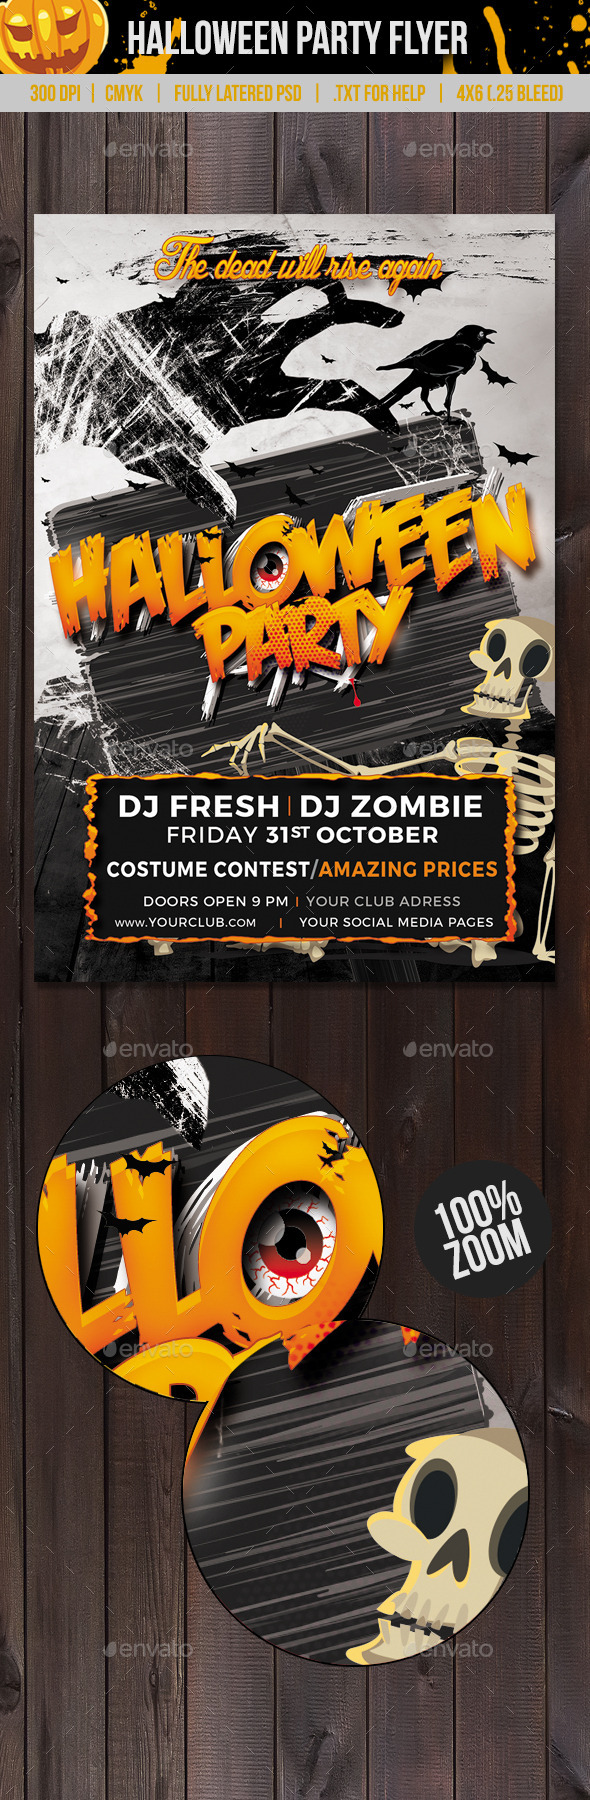 Dead Will Rise Halloween Flyer - Clubs & Parties Events